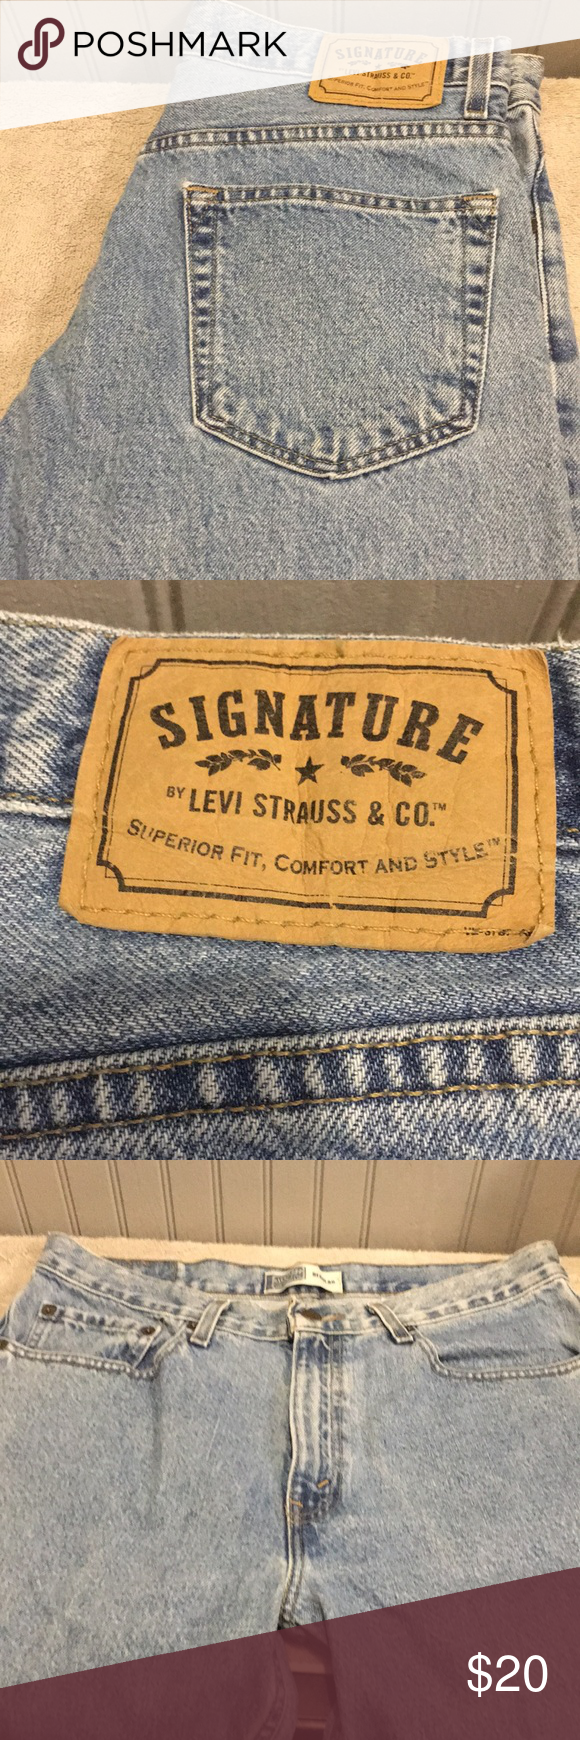 8aa40be4 Vintage Levi Strauss Men's Jeans EUC. Signature style and look of Levi's.  Lighter blue in color. Straight leg. Inseam 32 Signature by Levi Strauss  Jeans ...